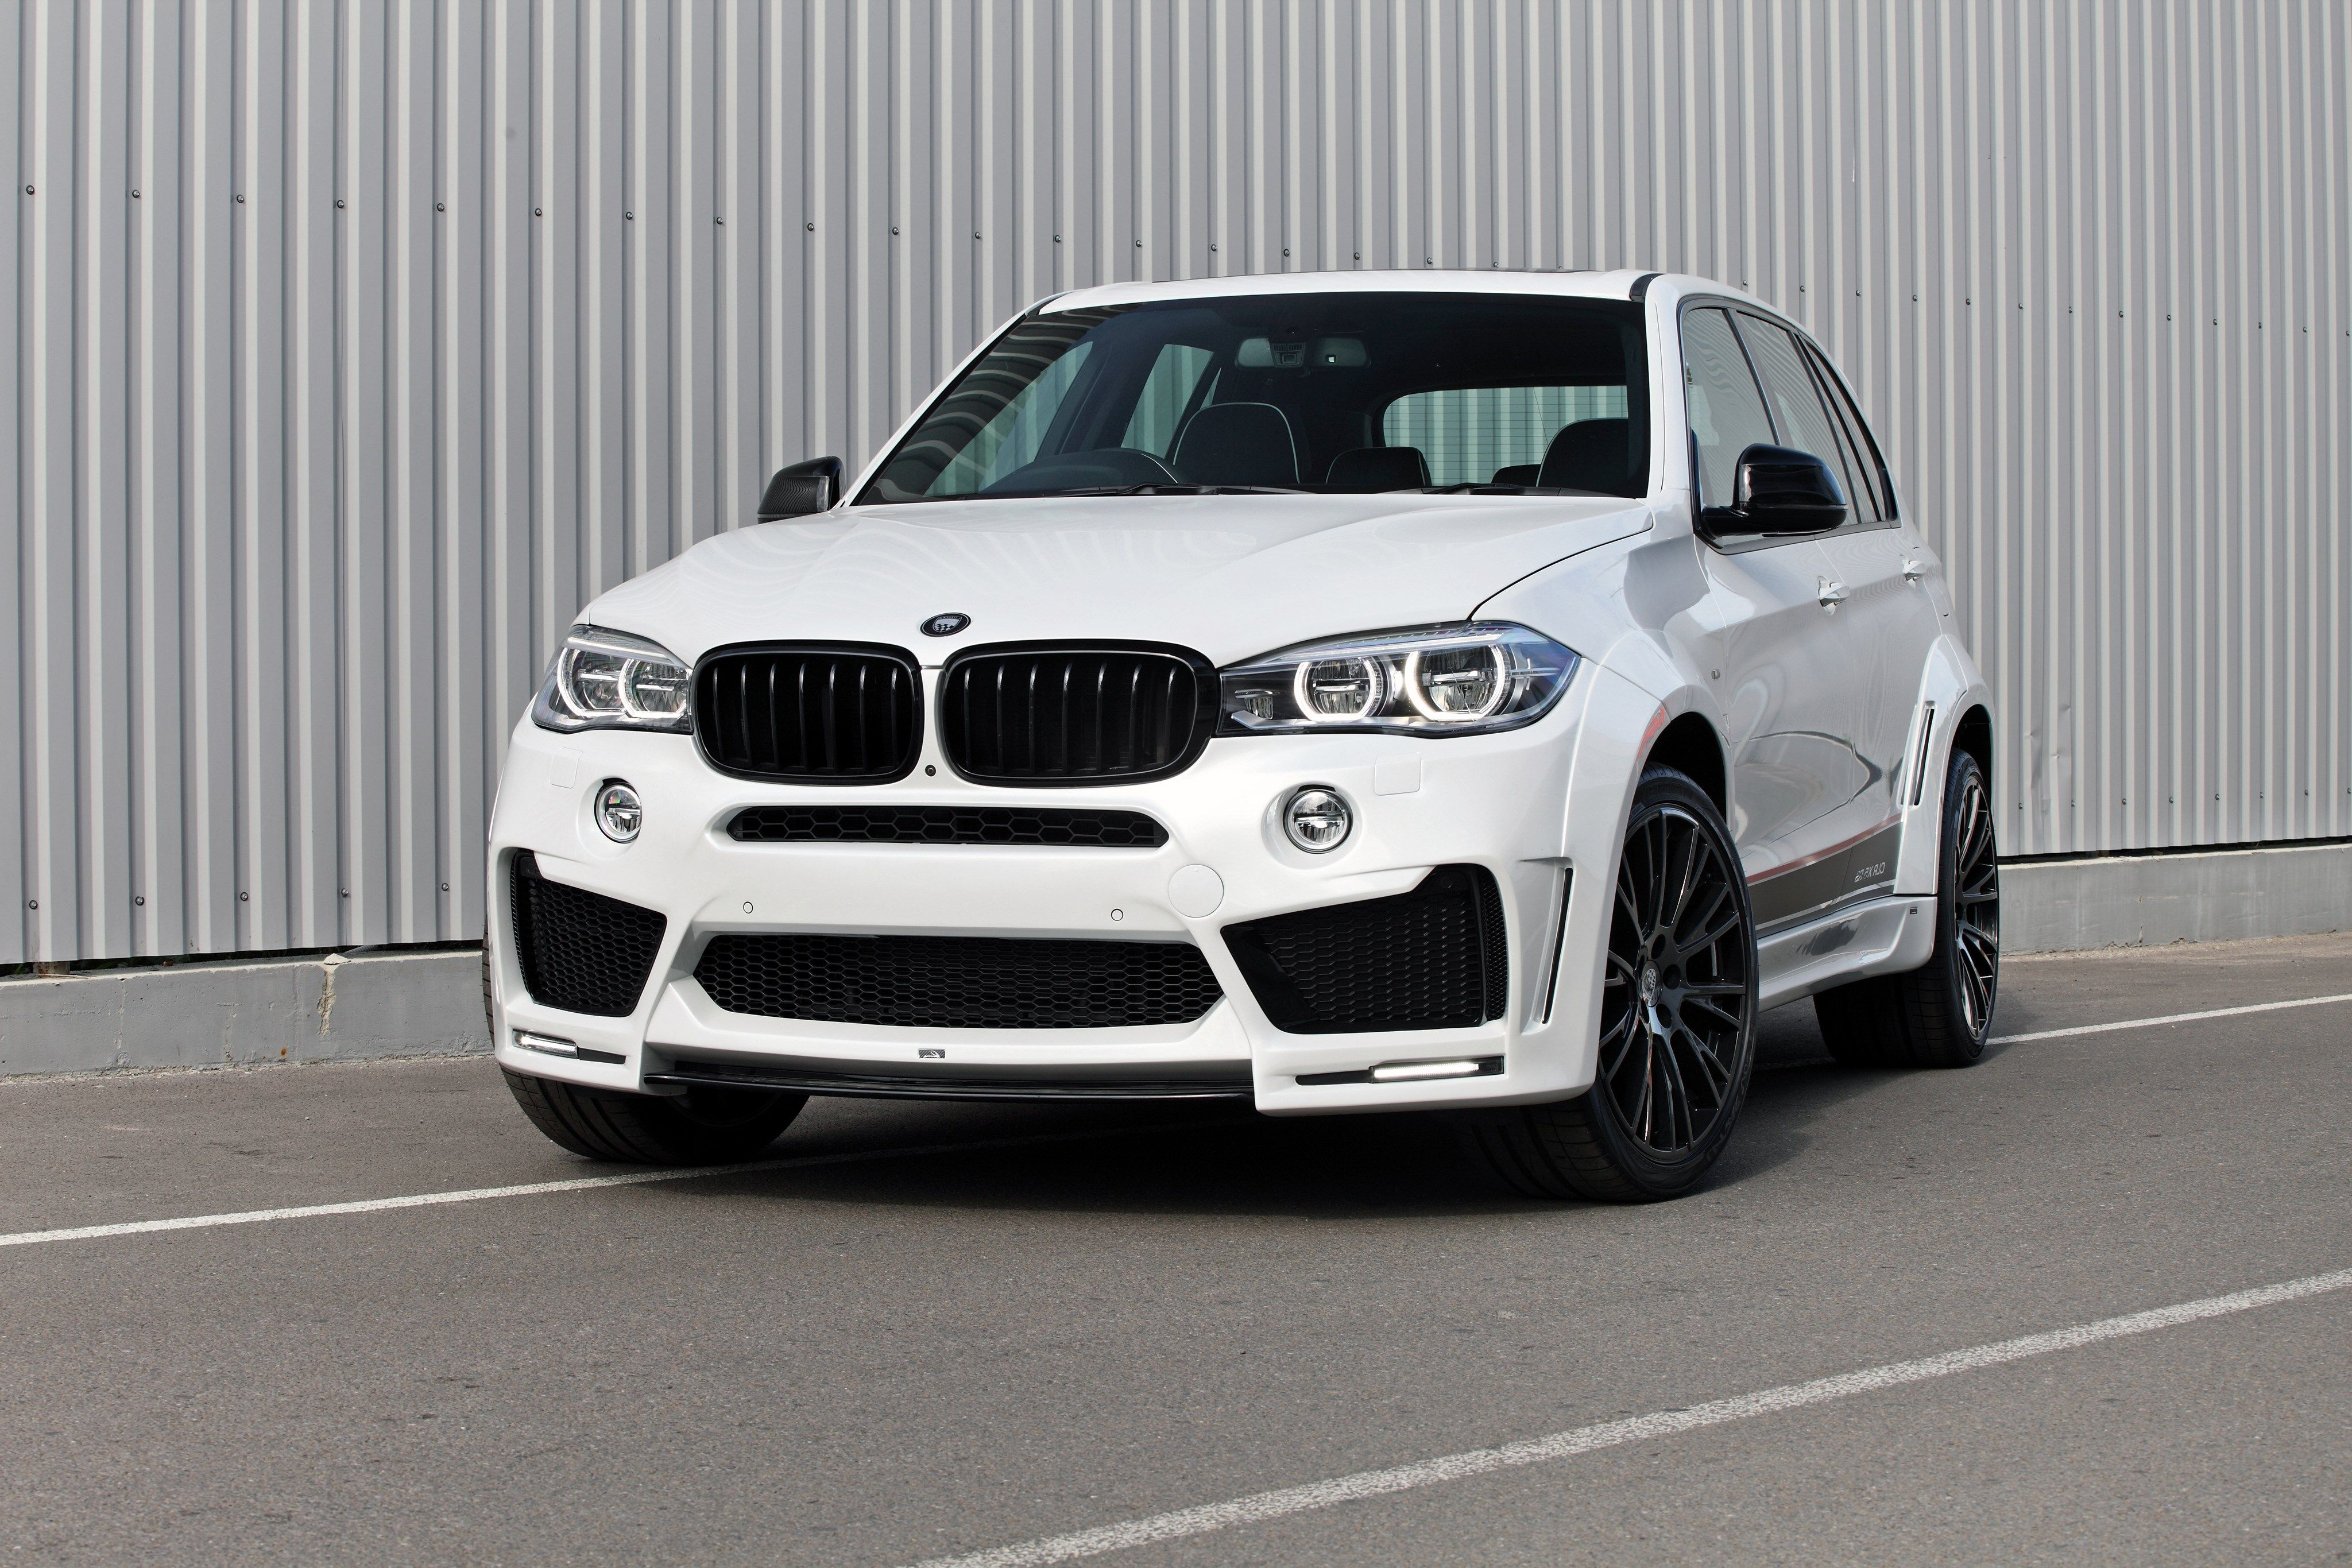 Bmw X5 4k Wallpaper 4096x2731 Wallpaperscreator Pinterest